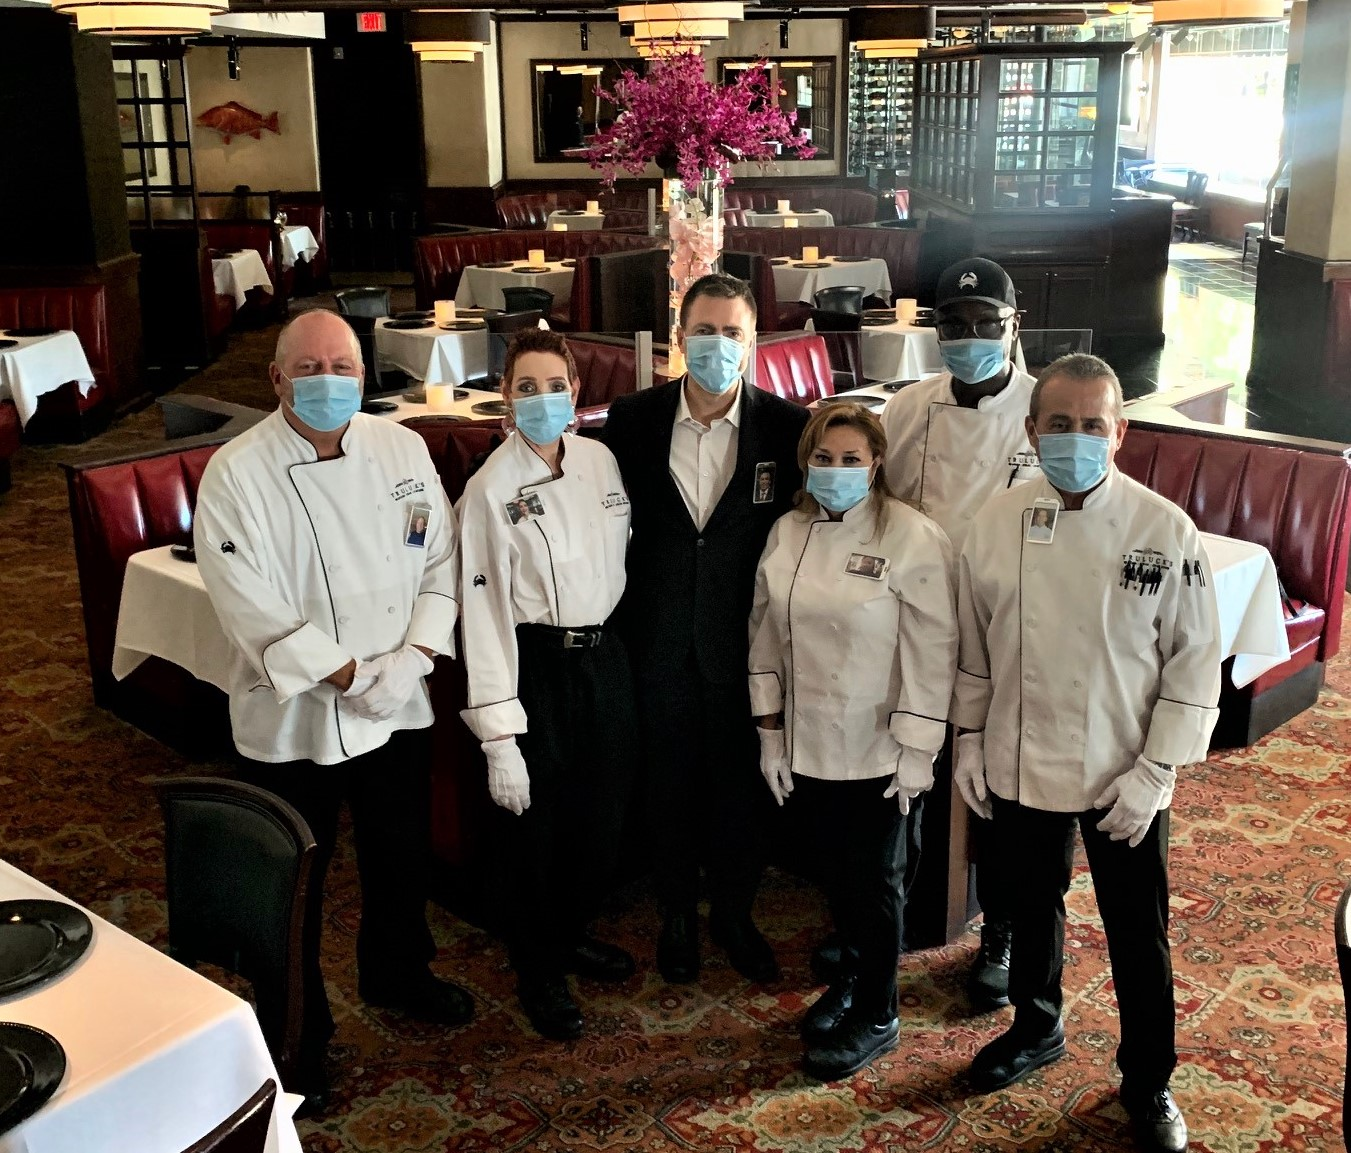 picture of Truluck's Houston staff pictured in masks and gloves during COVID-19. They are ready to offer safe, white glove service to our guests.